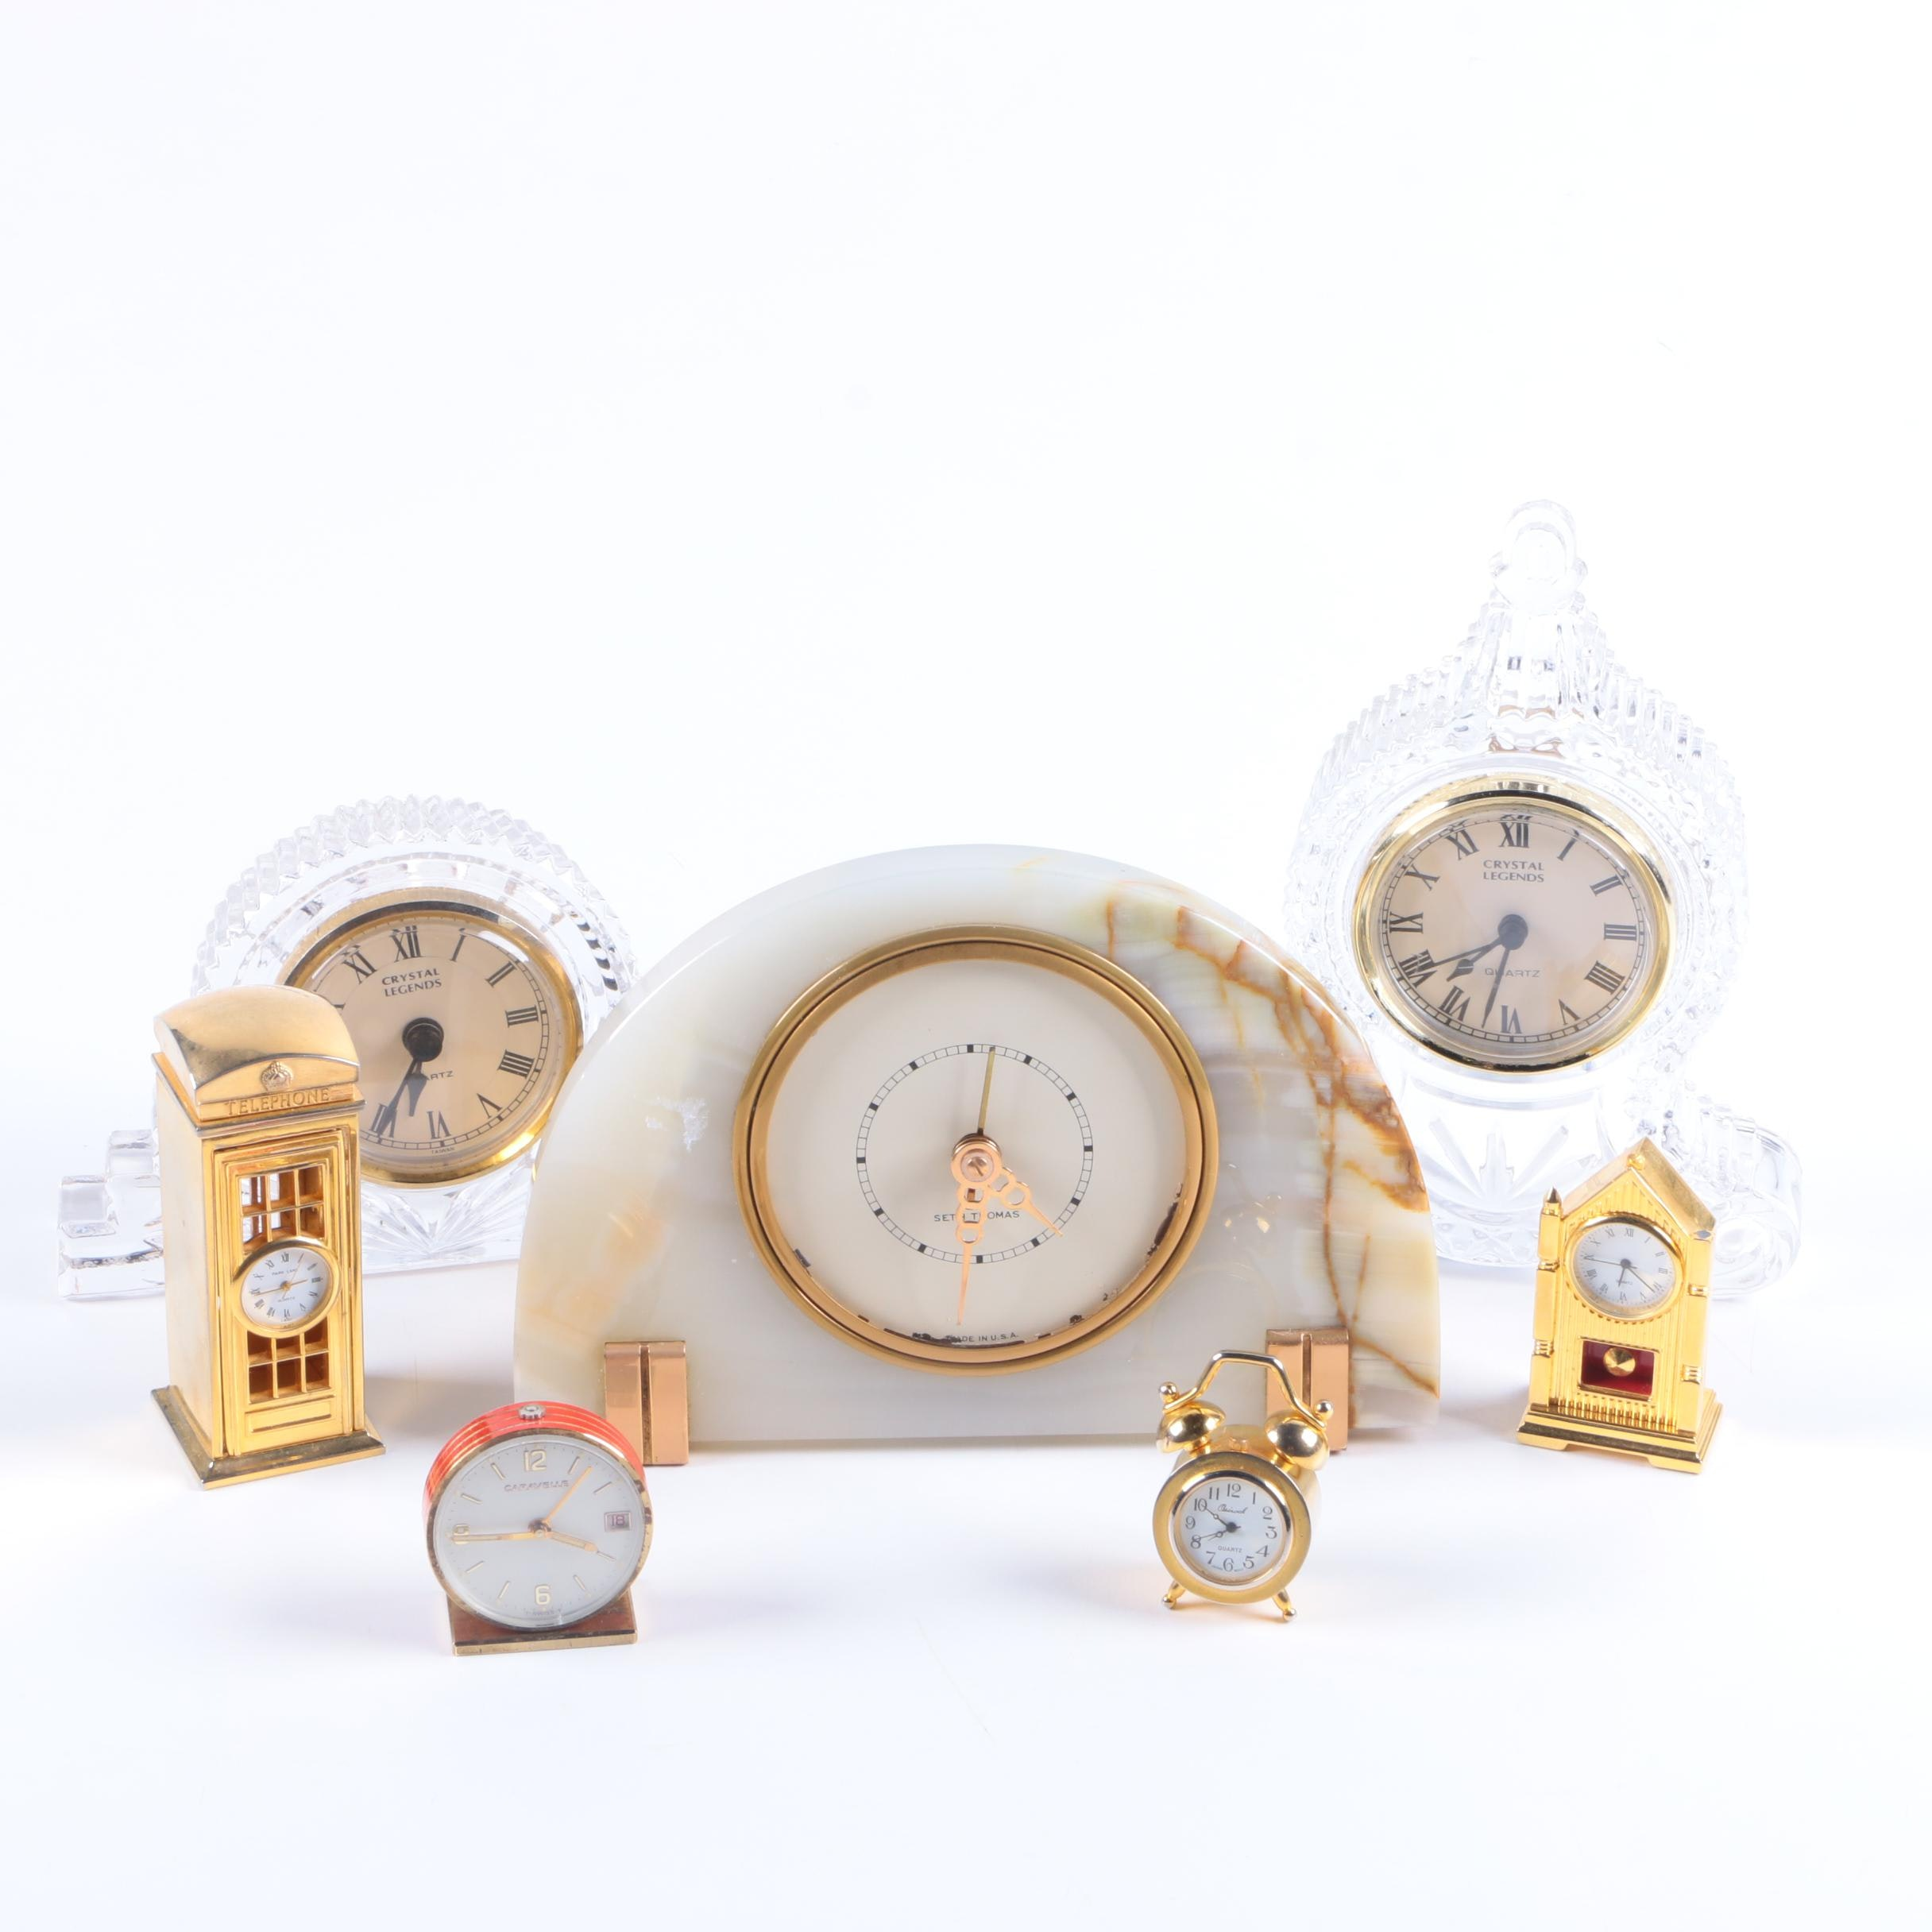 Collection of Mantel and Shelf Clocks featuring Godinger